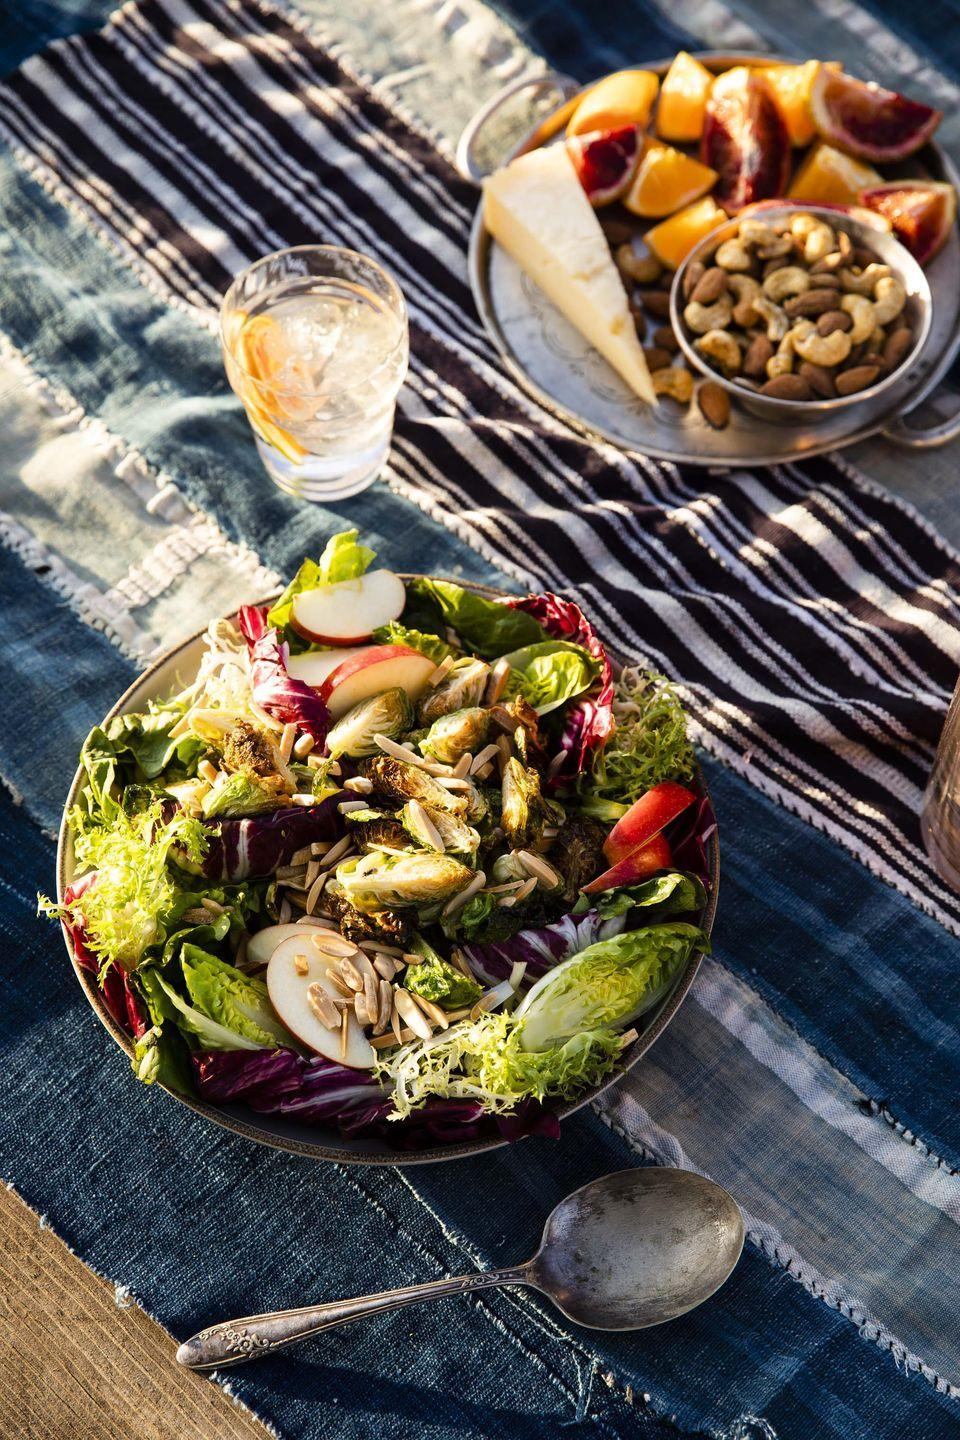 "<p>This may be the ultimate Thanksgiving salad. Crispy roasted sprouts combine with mixed lettuce, crunchy apples, toasted almonds, and nutty asiago cheese, all topped with a sweet vinaigrette. Trust us, the bowl will quickly get emptied.</p><p><strong><a href=""https://www.countryliving.com/food-drinks/a34276952/crispy-brussels-sprouts-salad/"" rel=""nofollow noopener"" target=""_blank"" data-ylk=""slk:Get the recipe"" class=""link rapid-noclick-resp"">Get the recipe</a>.</strong></p><p><a class=""link rapid-noclick-resp"" href=""https://www.amazon.com/Gibson-60687-03-Laroda-Including-Acacia/dp/B0088D4N7M?tag=syn-yahoo-20&ascsubtag=%5Bartid%7C10050.g.4710%5Bsrc%7Cyahoo-us"" rel=""nofollow noopener"" target=""_blank"" data-ylk=""slk:SHOP SALAD BOWLS"">SHOP SALAD BOWLS</a></p>"